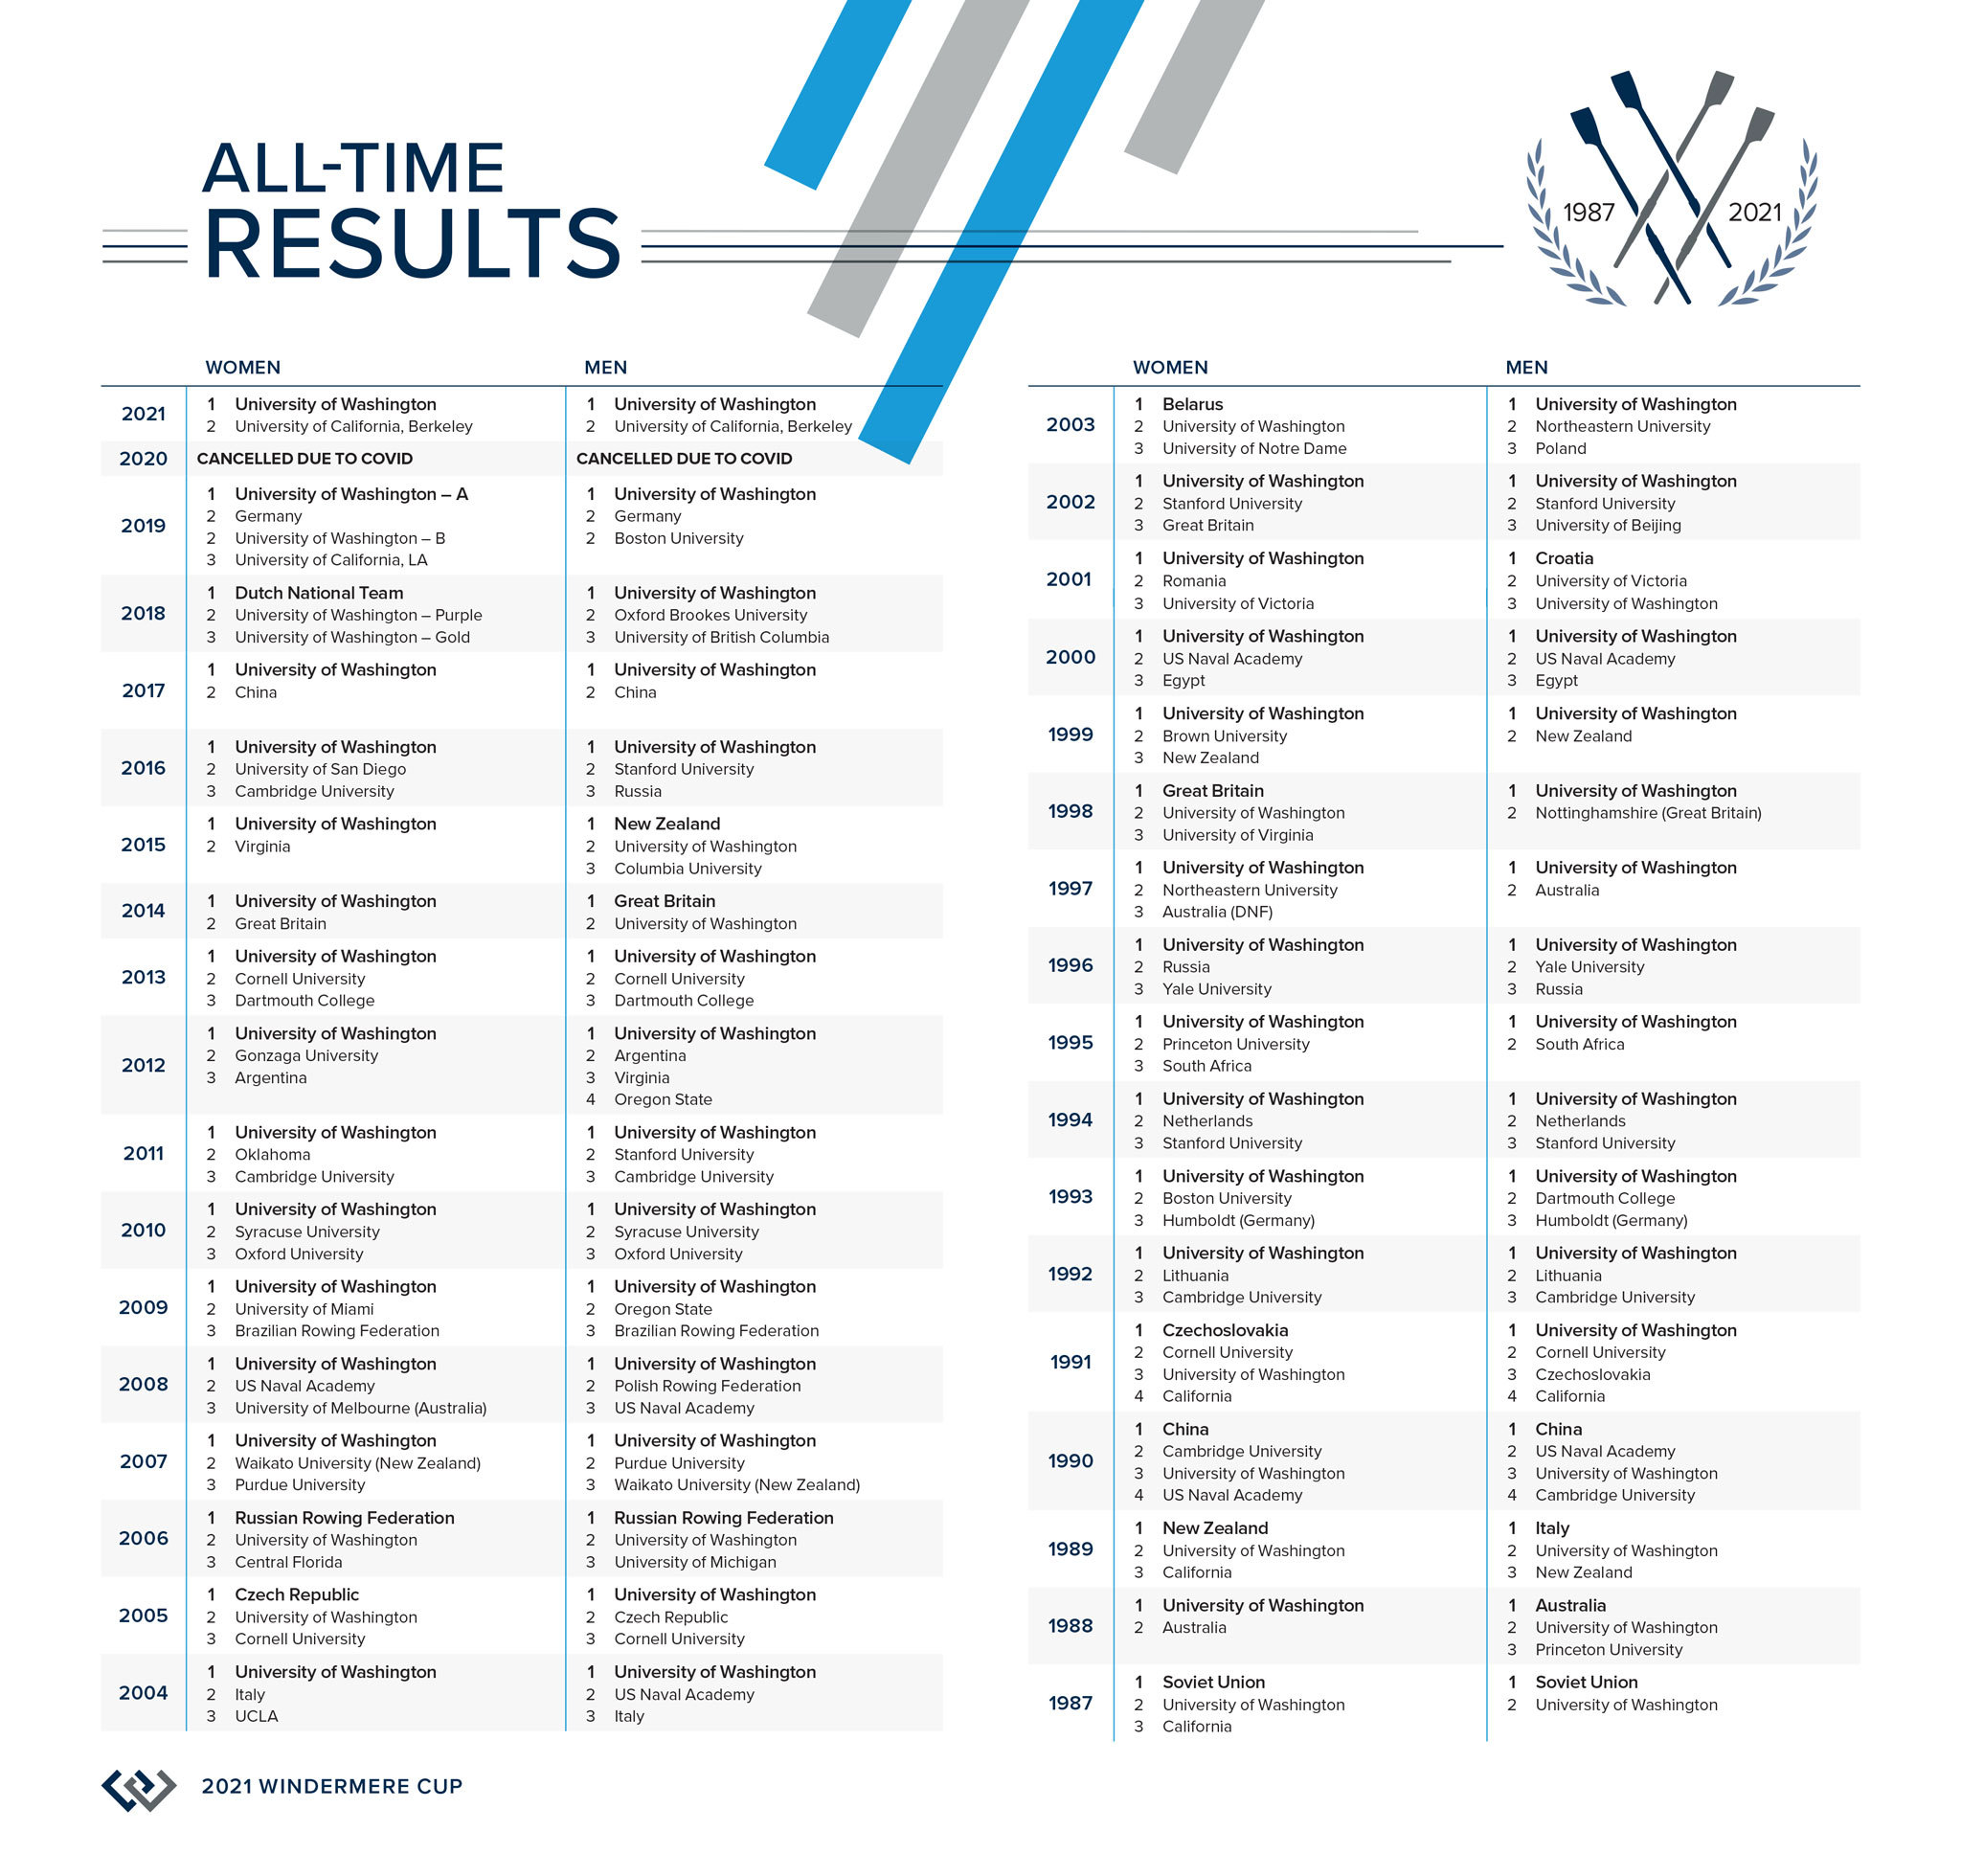 21165-wreCup-All-Time-Results-2021